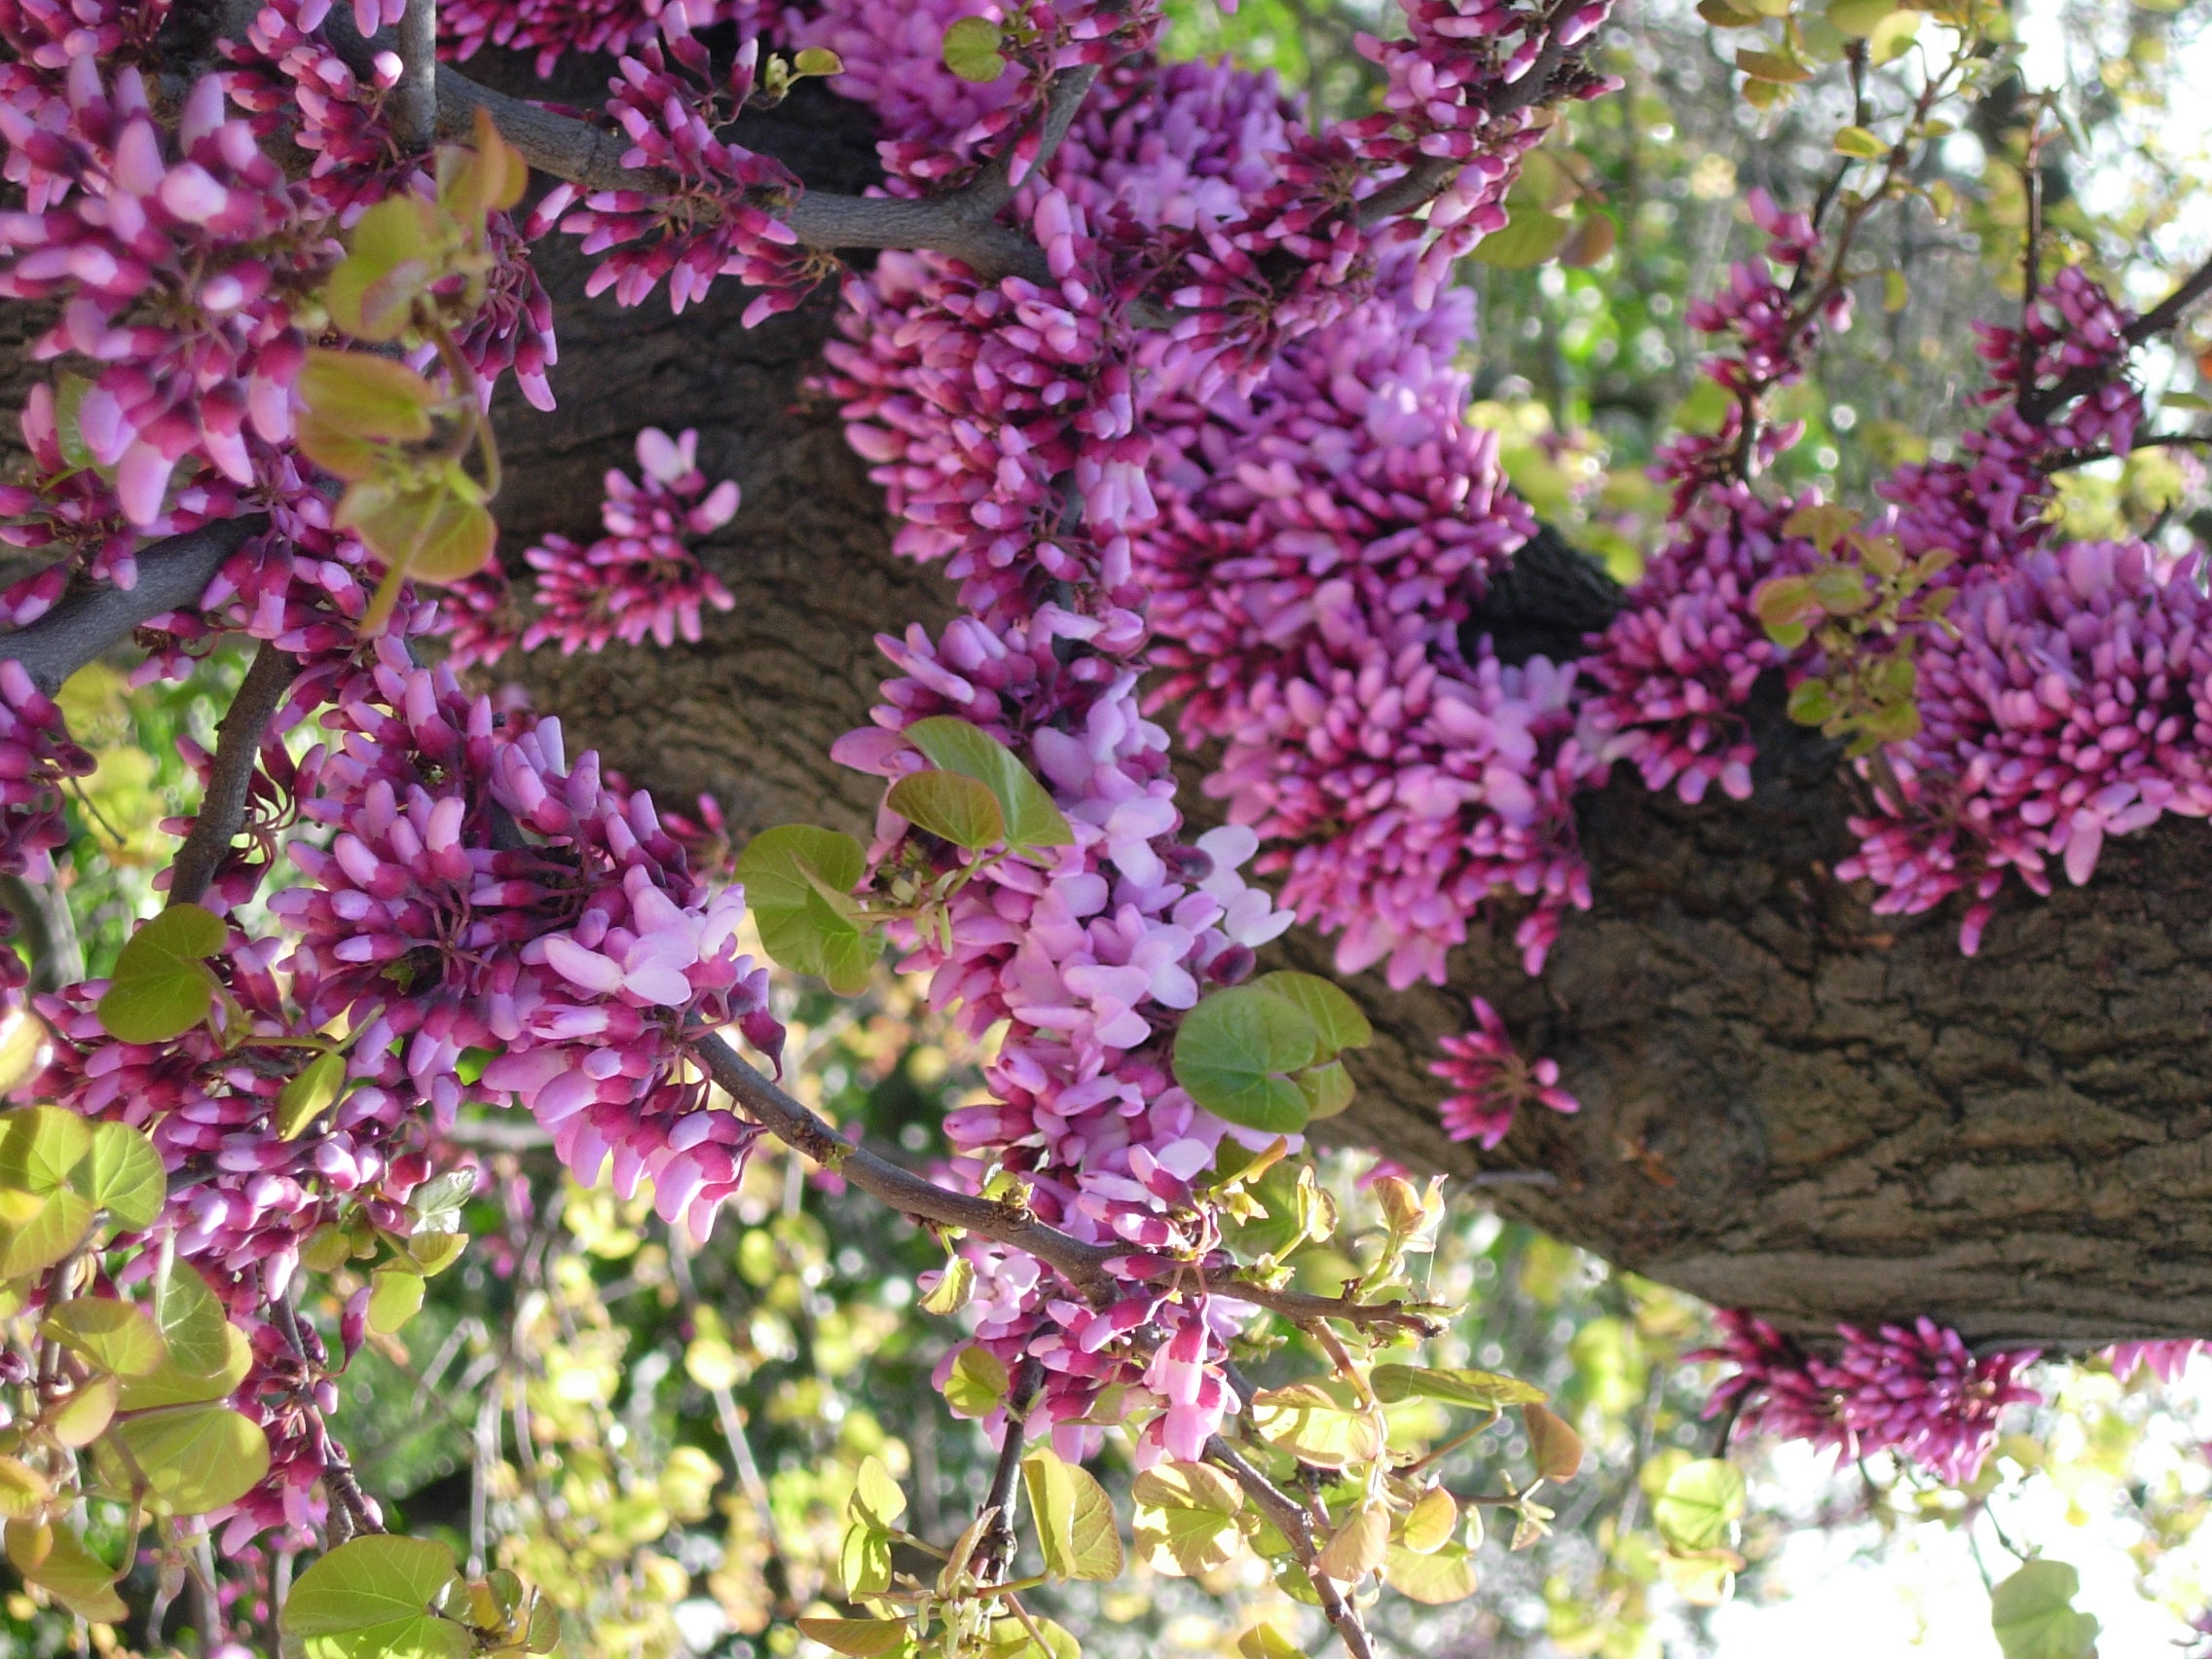 Purple Flowers Tree 28 Widescreen Wallpaper HdFlowerWallpaper